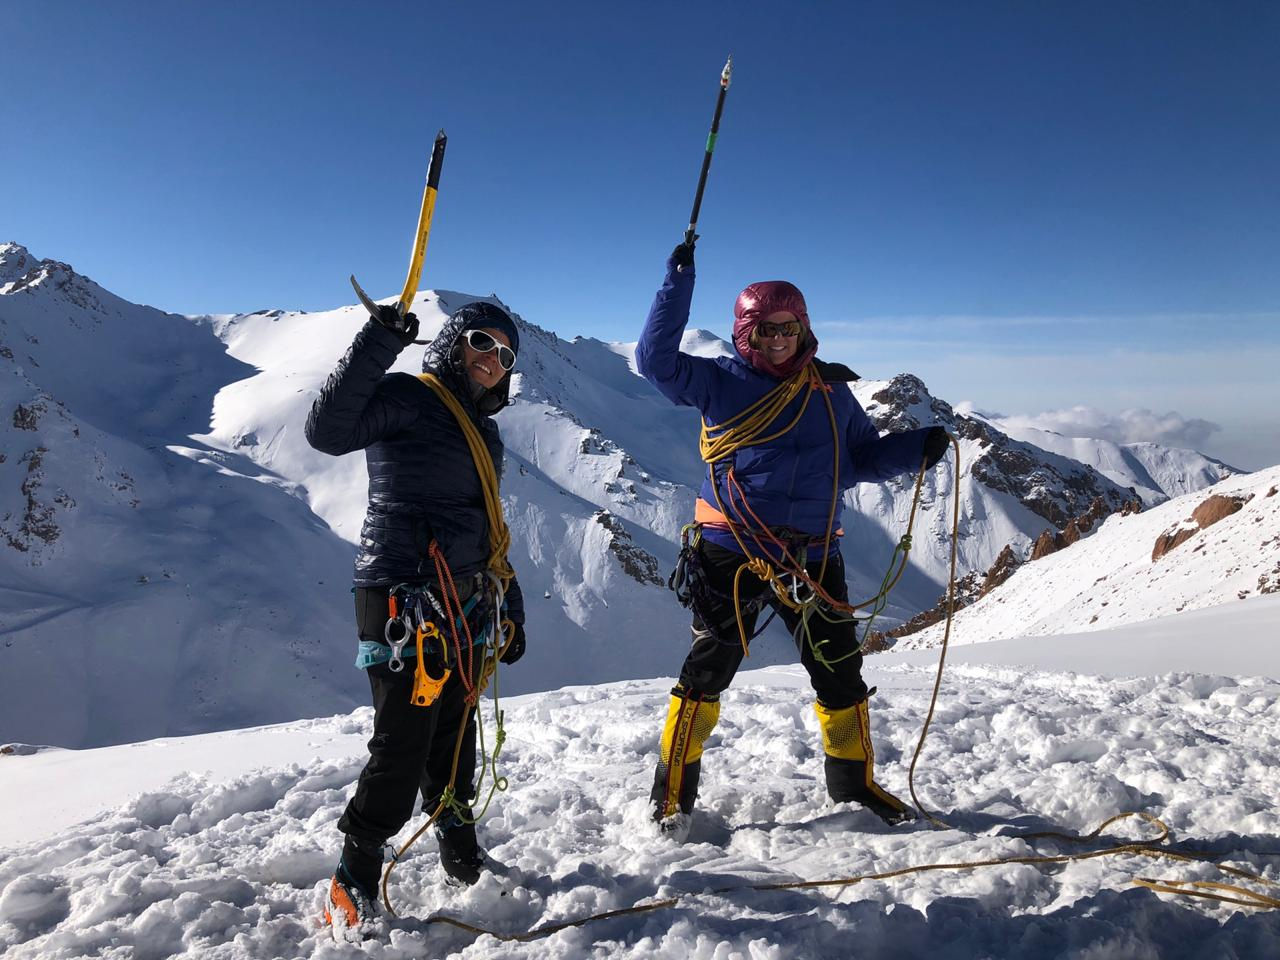 Mountaineering Course - Prepare for mountains like Elbrus or Ararat with us on a summer or winter mountaineering course in Kazakhstan.Trail Type: Out and BackTime: 4 daysTerrain: Snow, cliffs, iceSuitable For: Those wanting to learn mountaineering skills